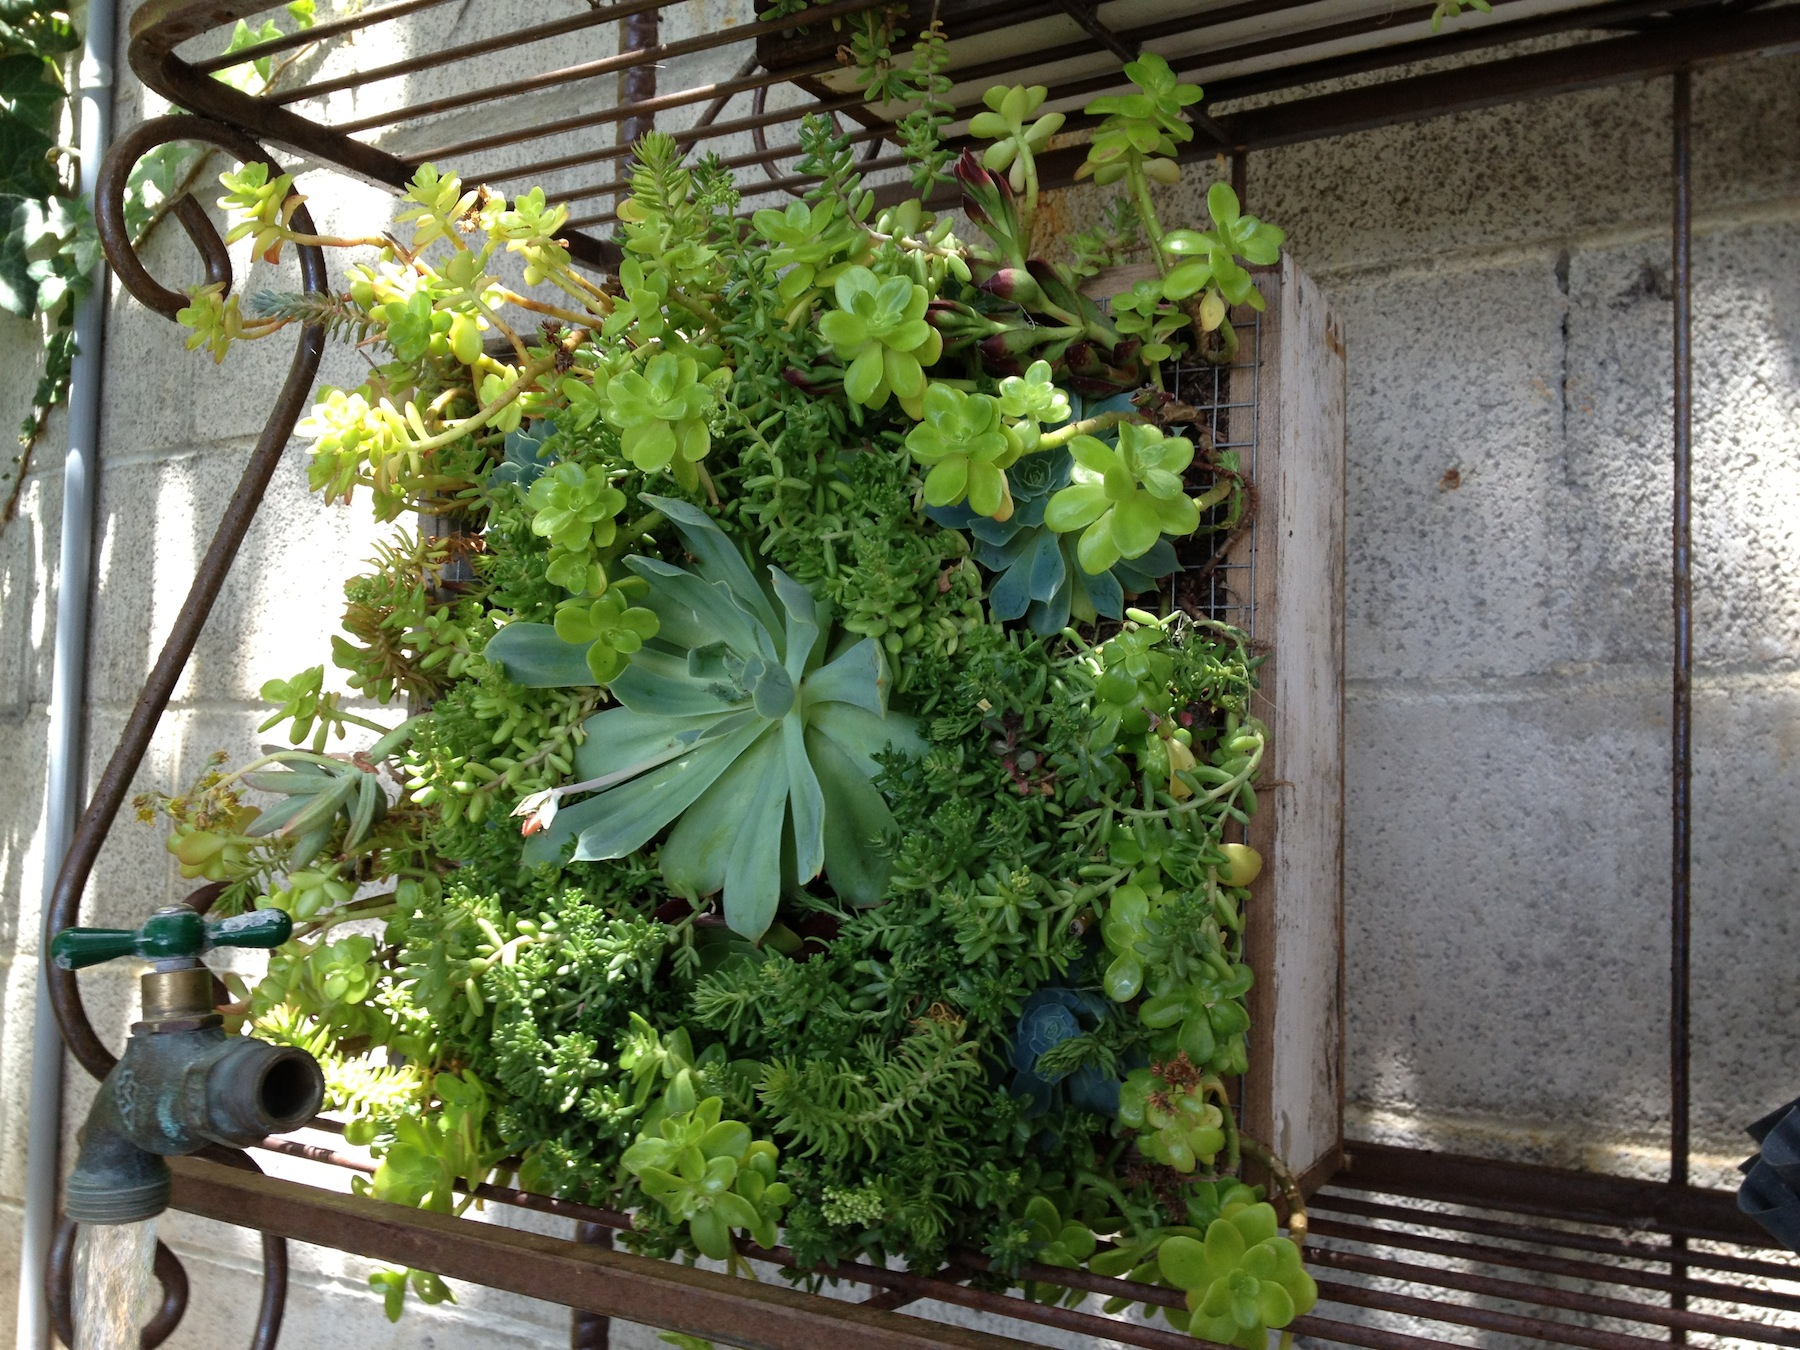 5 easy steps to gardening for apartment dwellers travelnerd - Practical tips for gardening in june ...